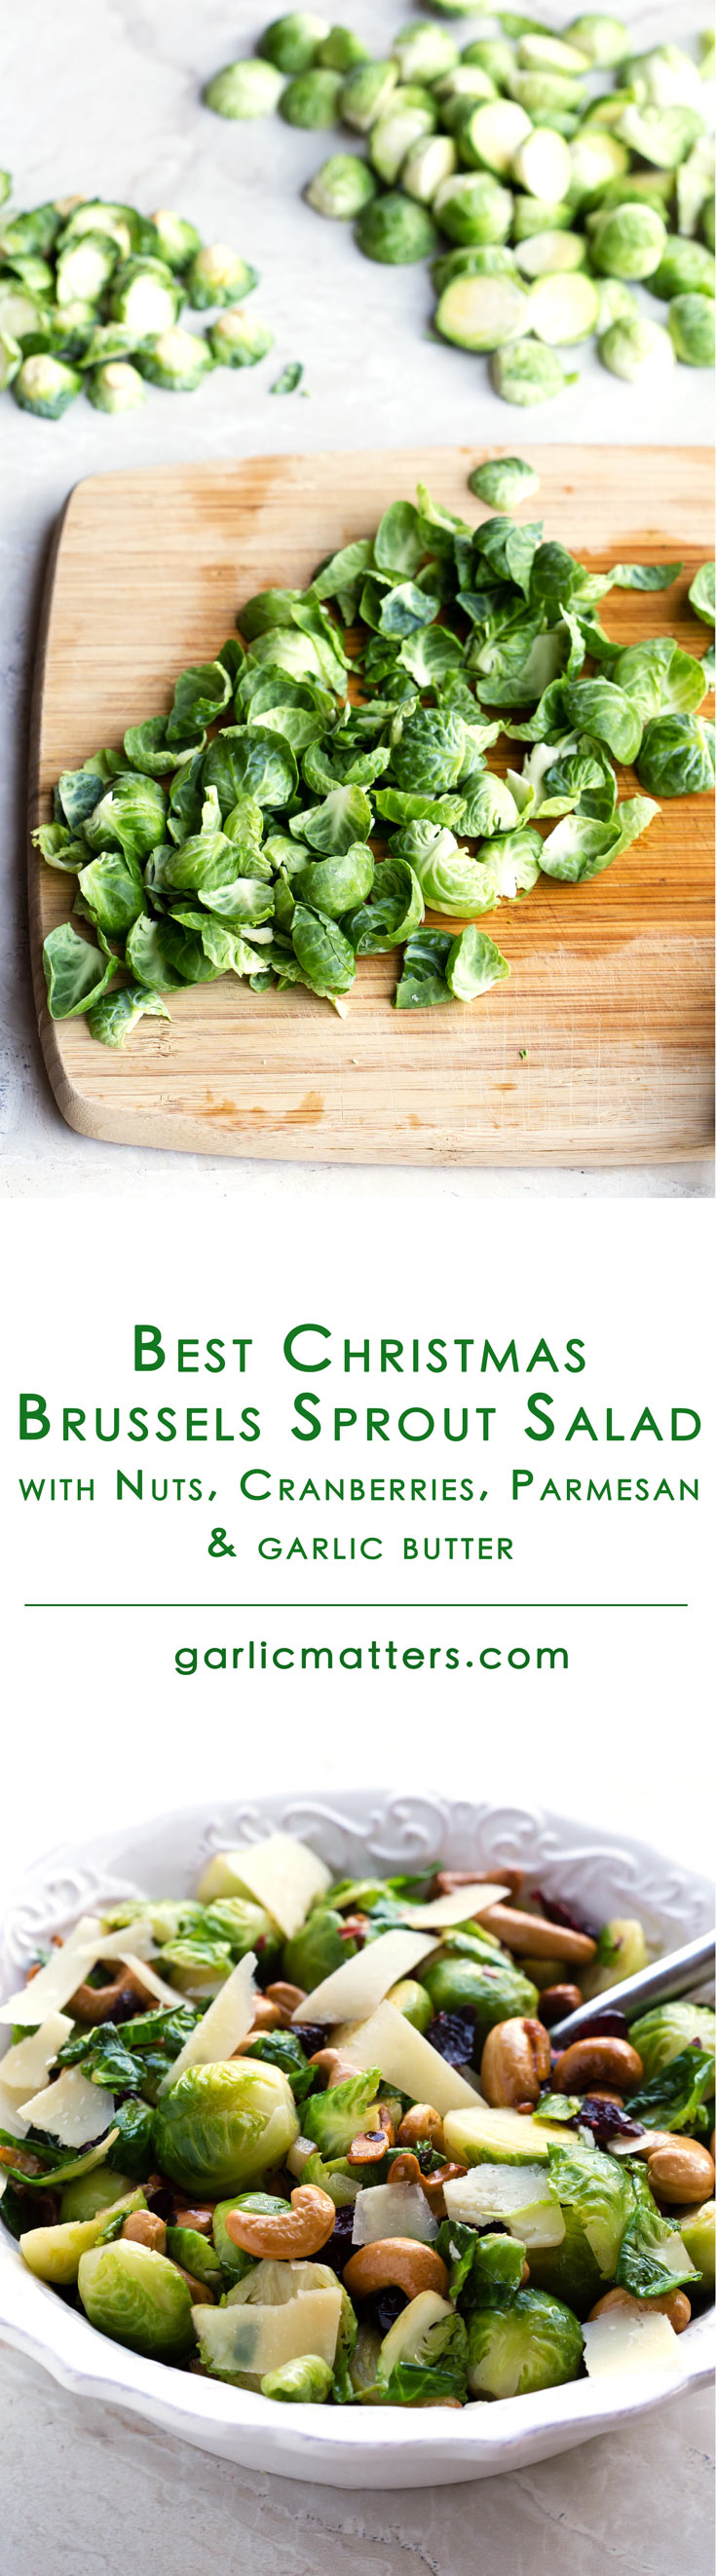 This is the Best Brussels Sprout Salad with nuts, cranberries, Parmesan and garlic butter dressing - delicious and easy Christmas dinner, vegetarian side dish recipe idea ready in 15min. Find out how easy it is to add a tasty twist to your traditional dinner menu.